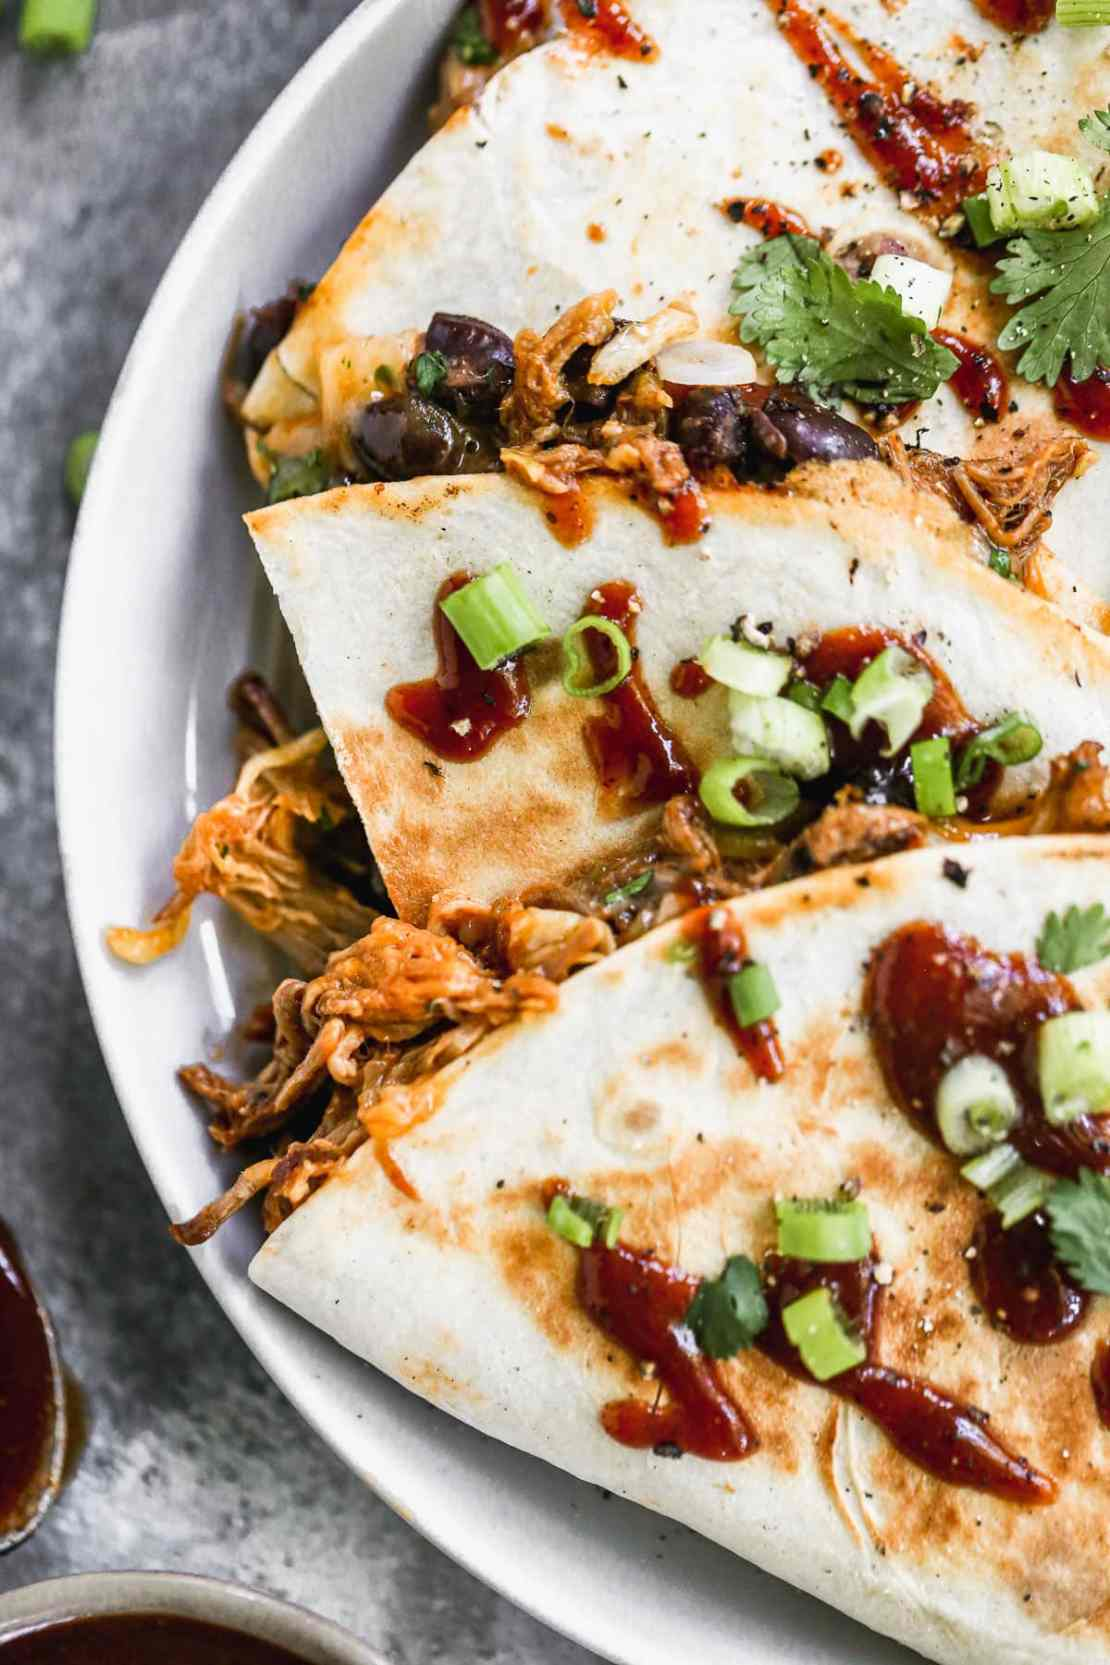 A BBQ Pulled Pork Quesadilla on a Plate